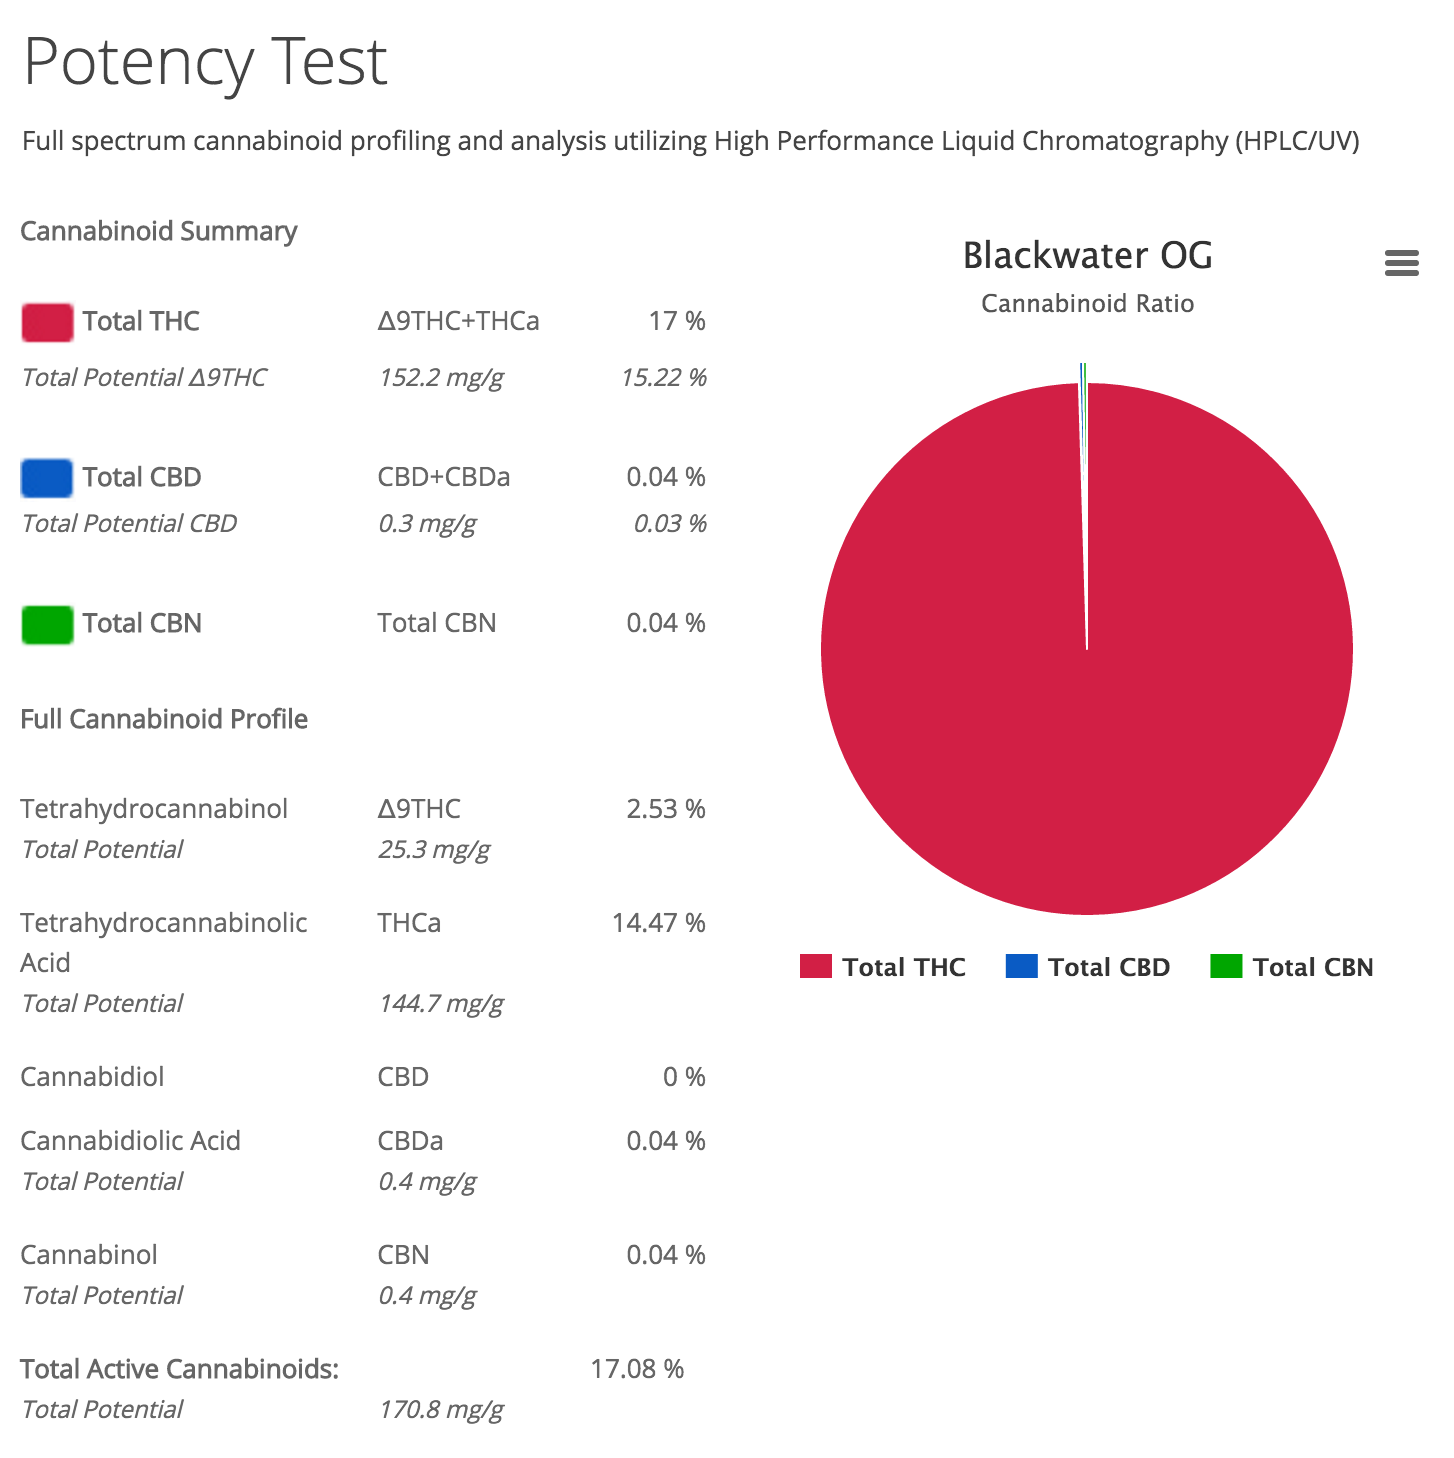 Blackwater OG Lab Test Results